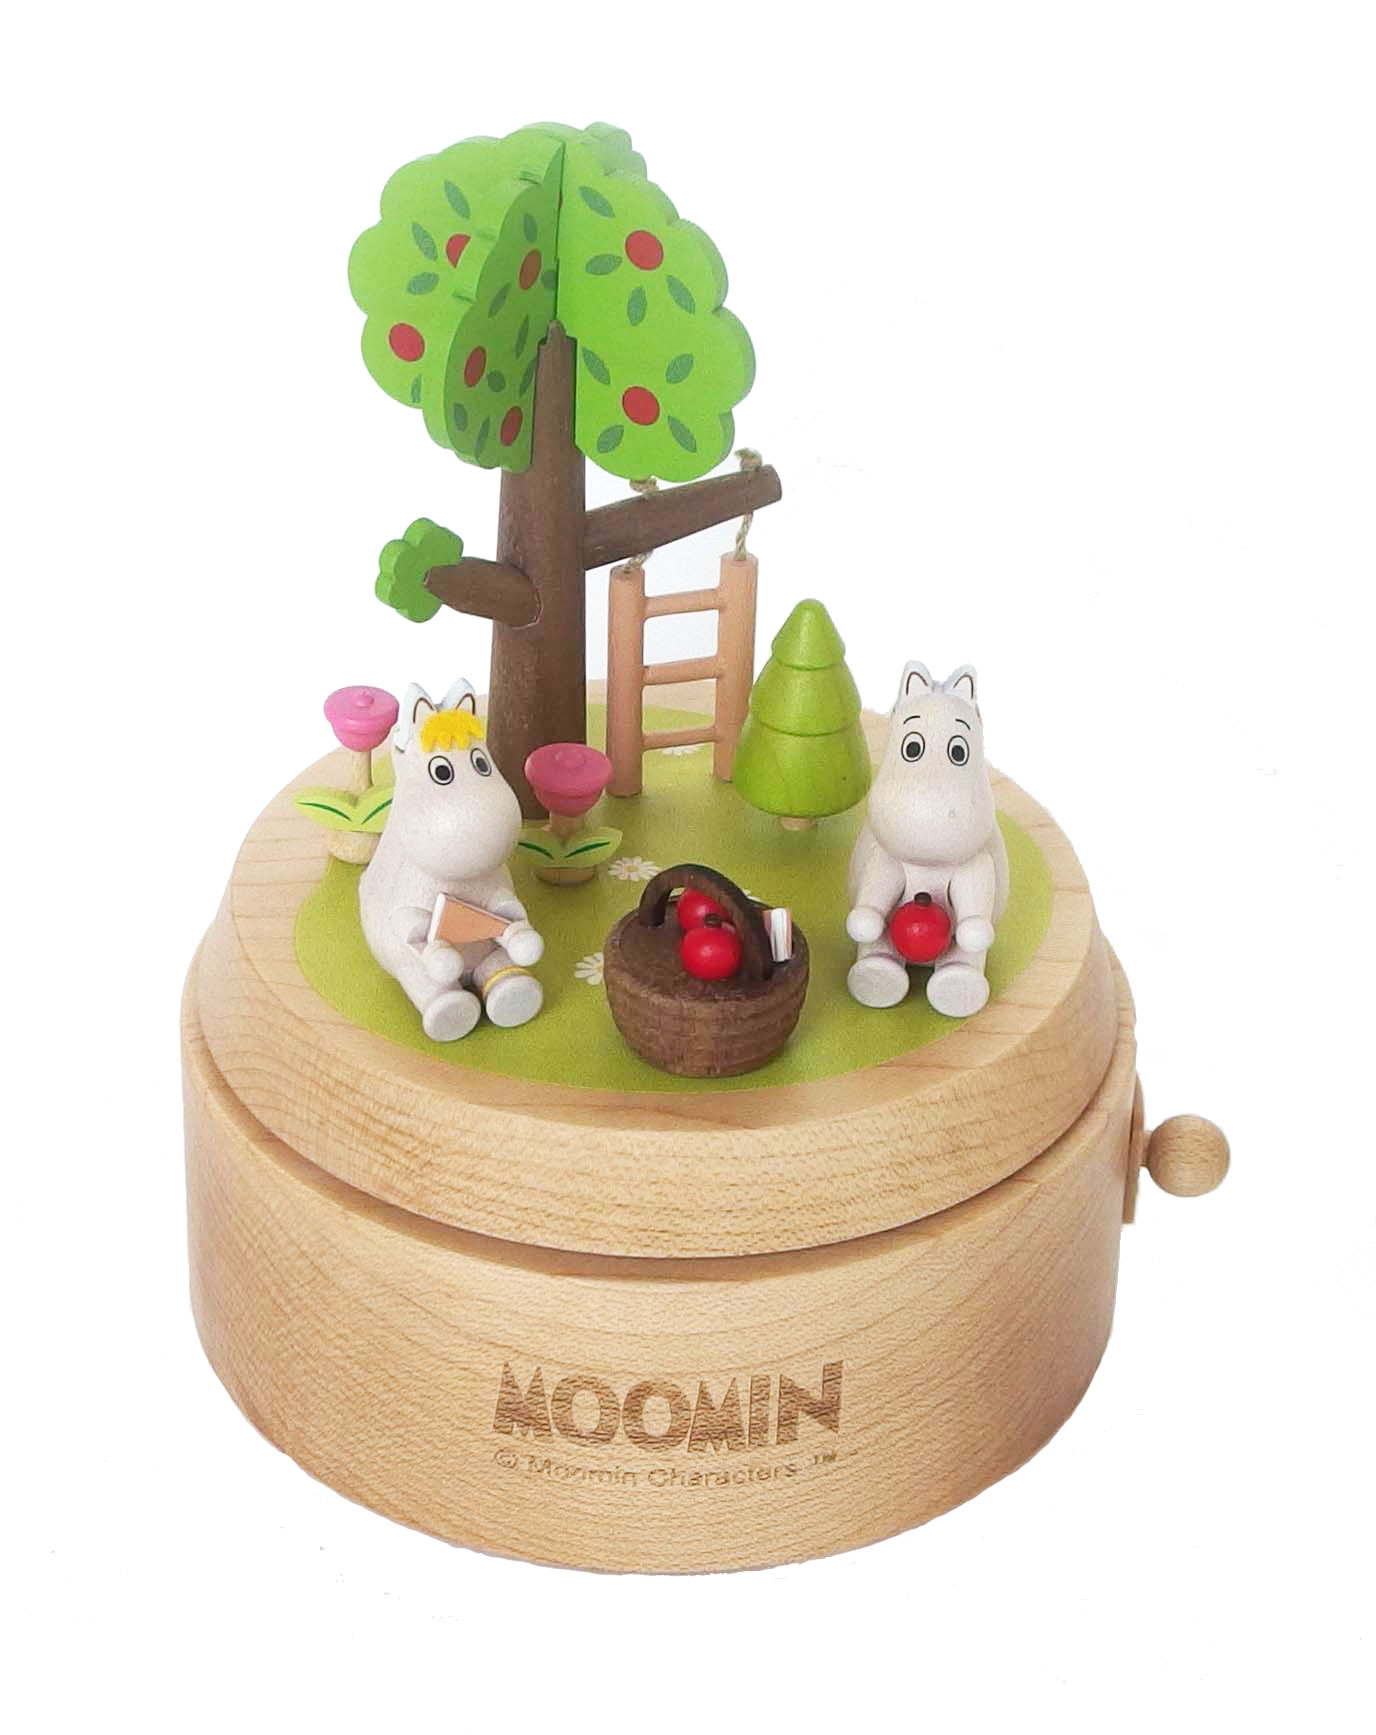 Artic-Hall Music box-Moomin picnic